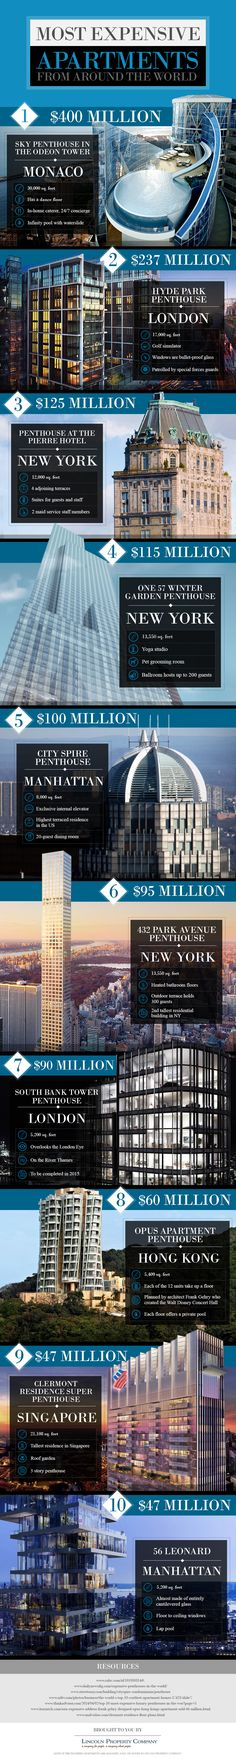 Most Expensive Apartments from Around The World